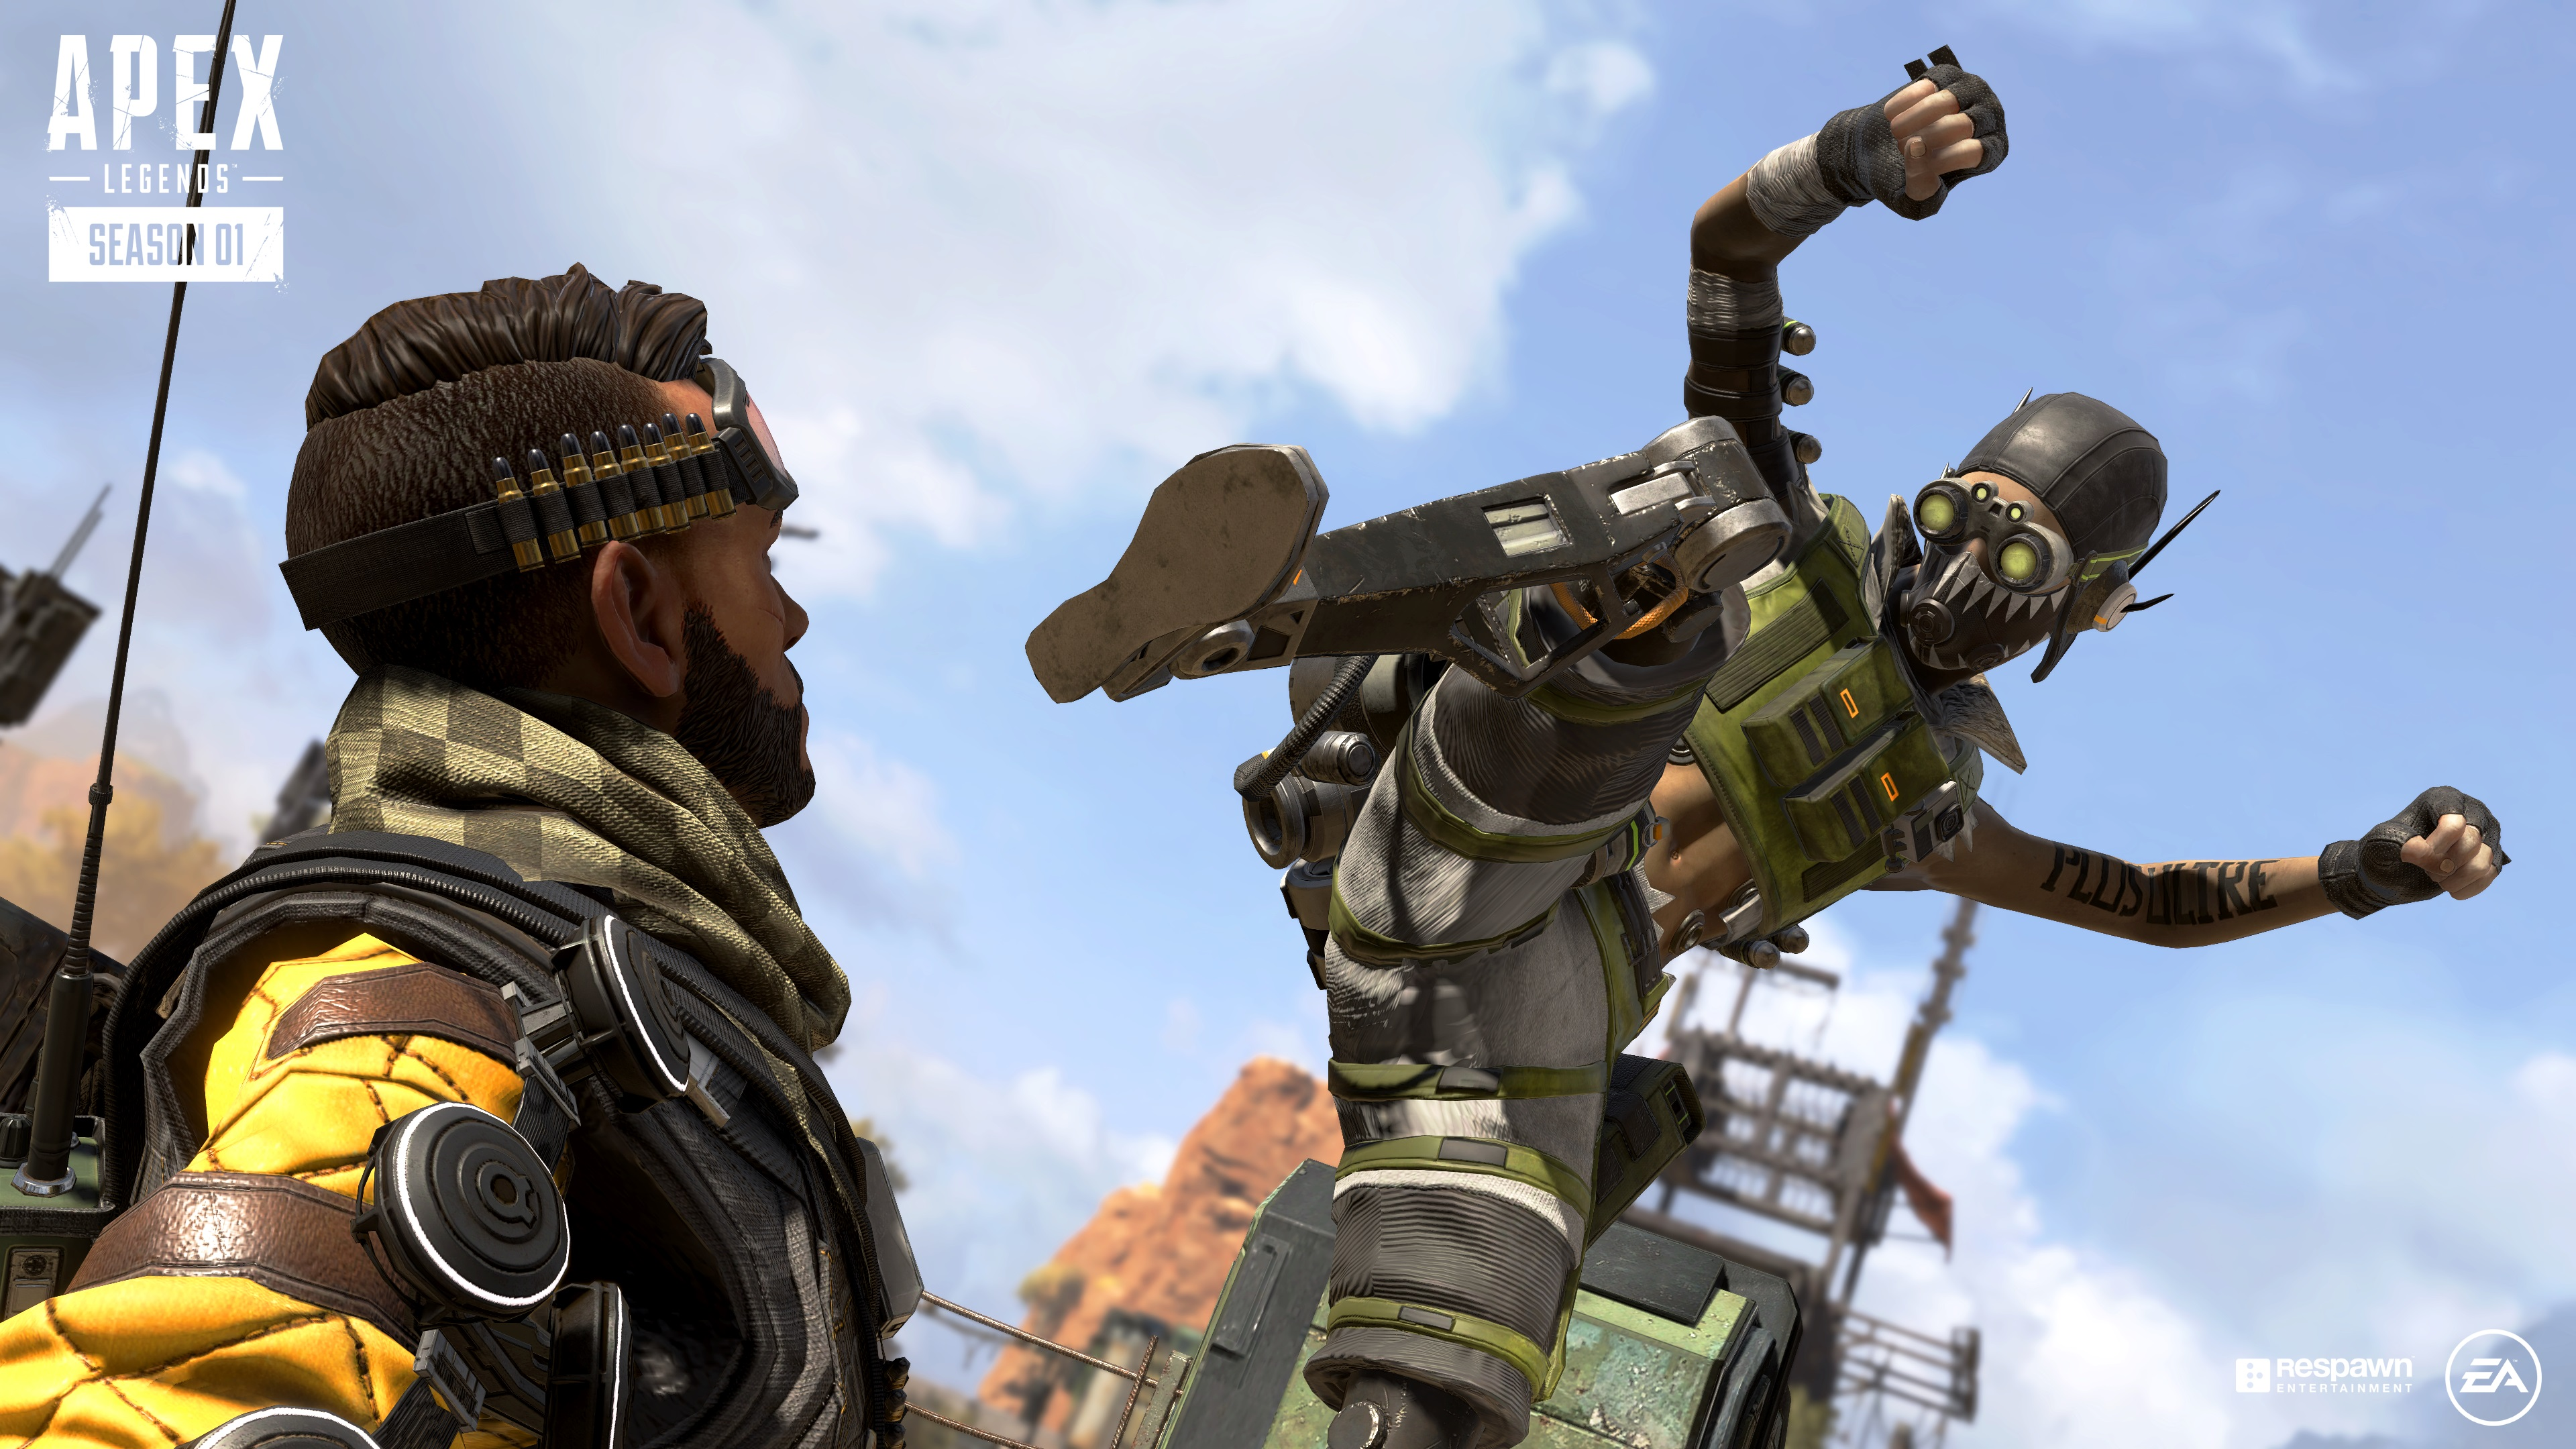 Apex Legends Season 1: Wild Frontier patch notes include